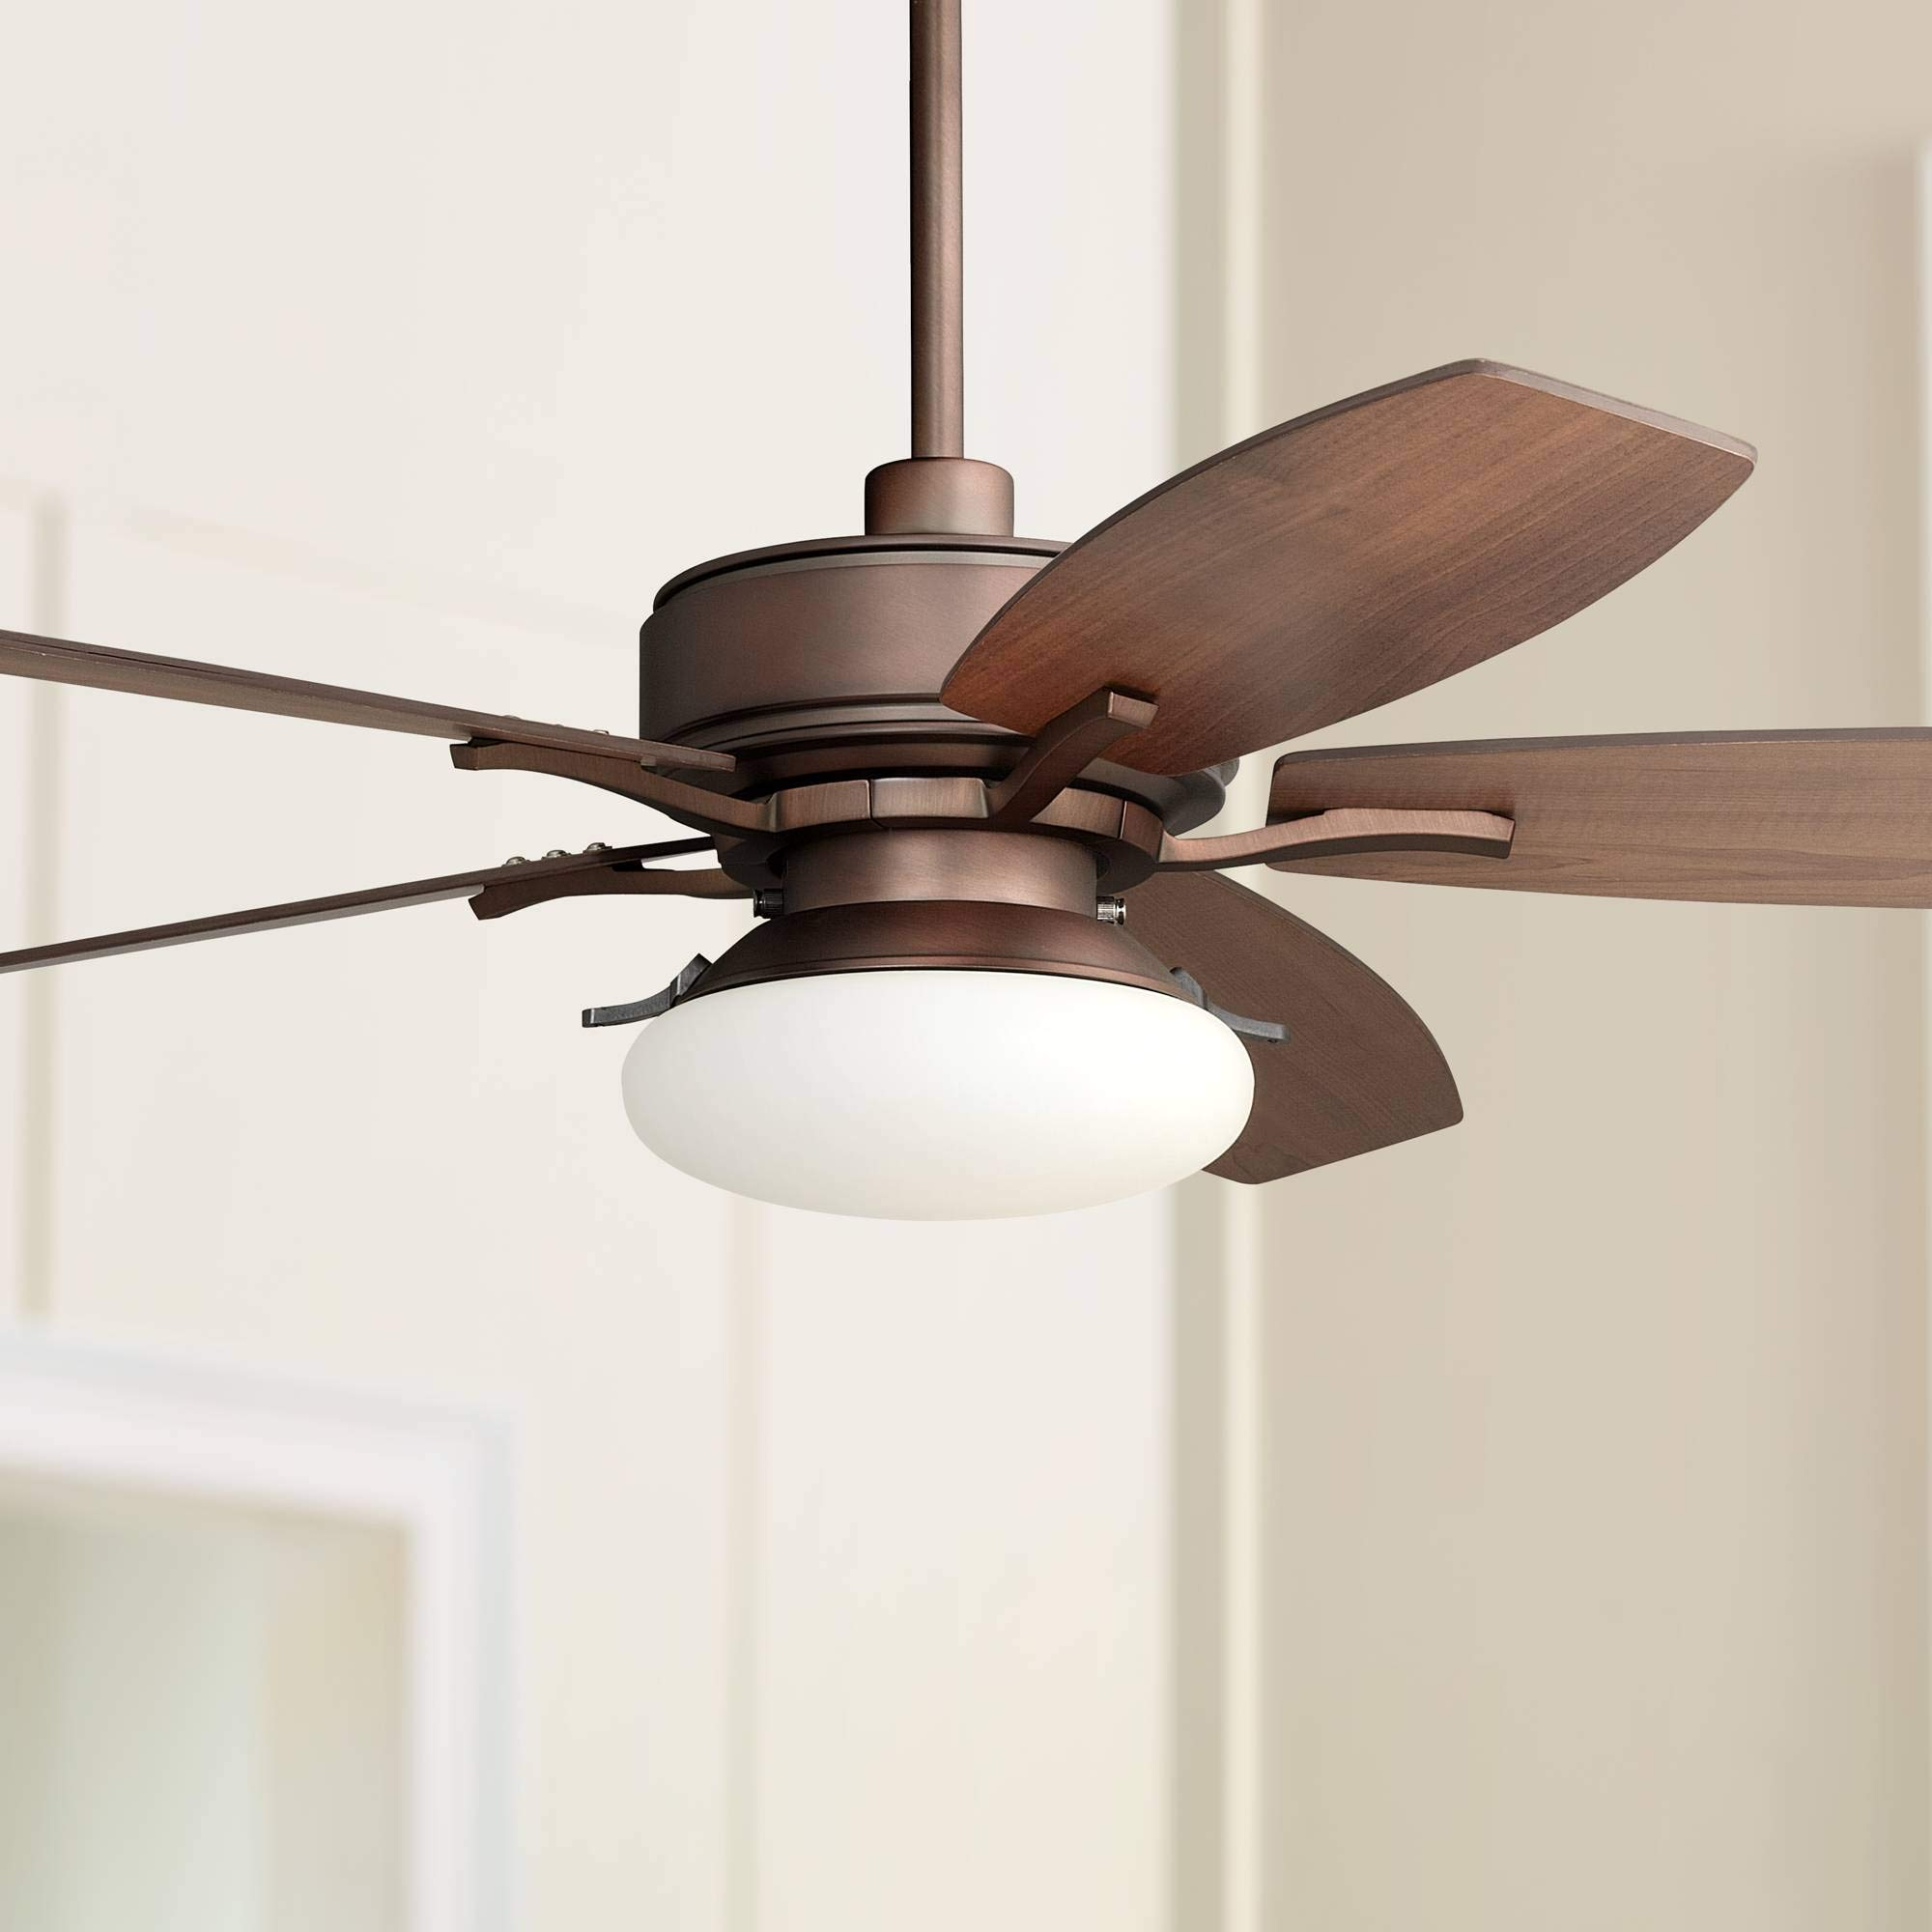 52'' Bellasario LED Oil-Brushed Bronze Ceiling Fan - Casa Vieja